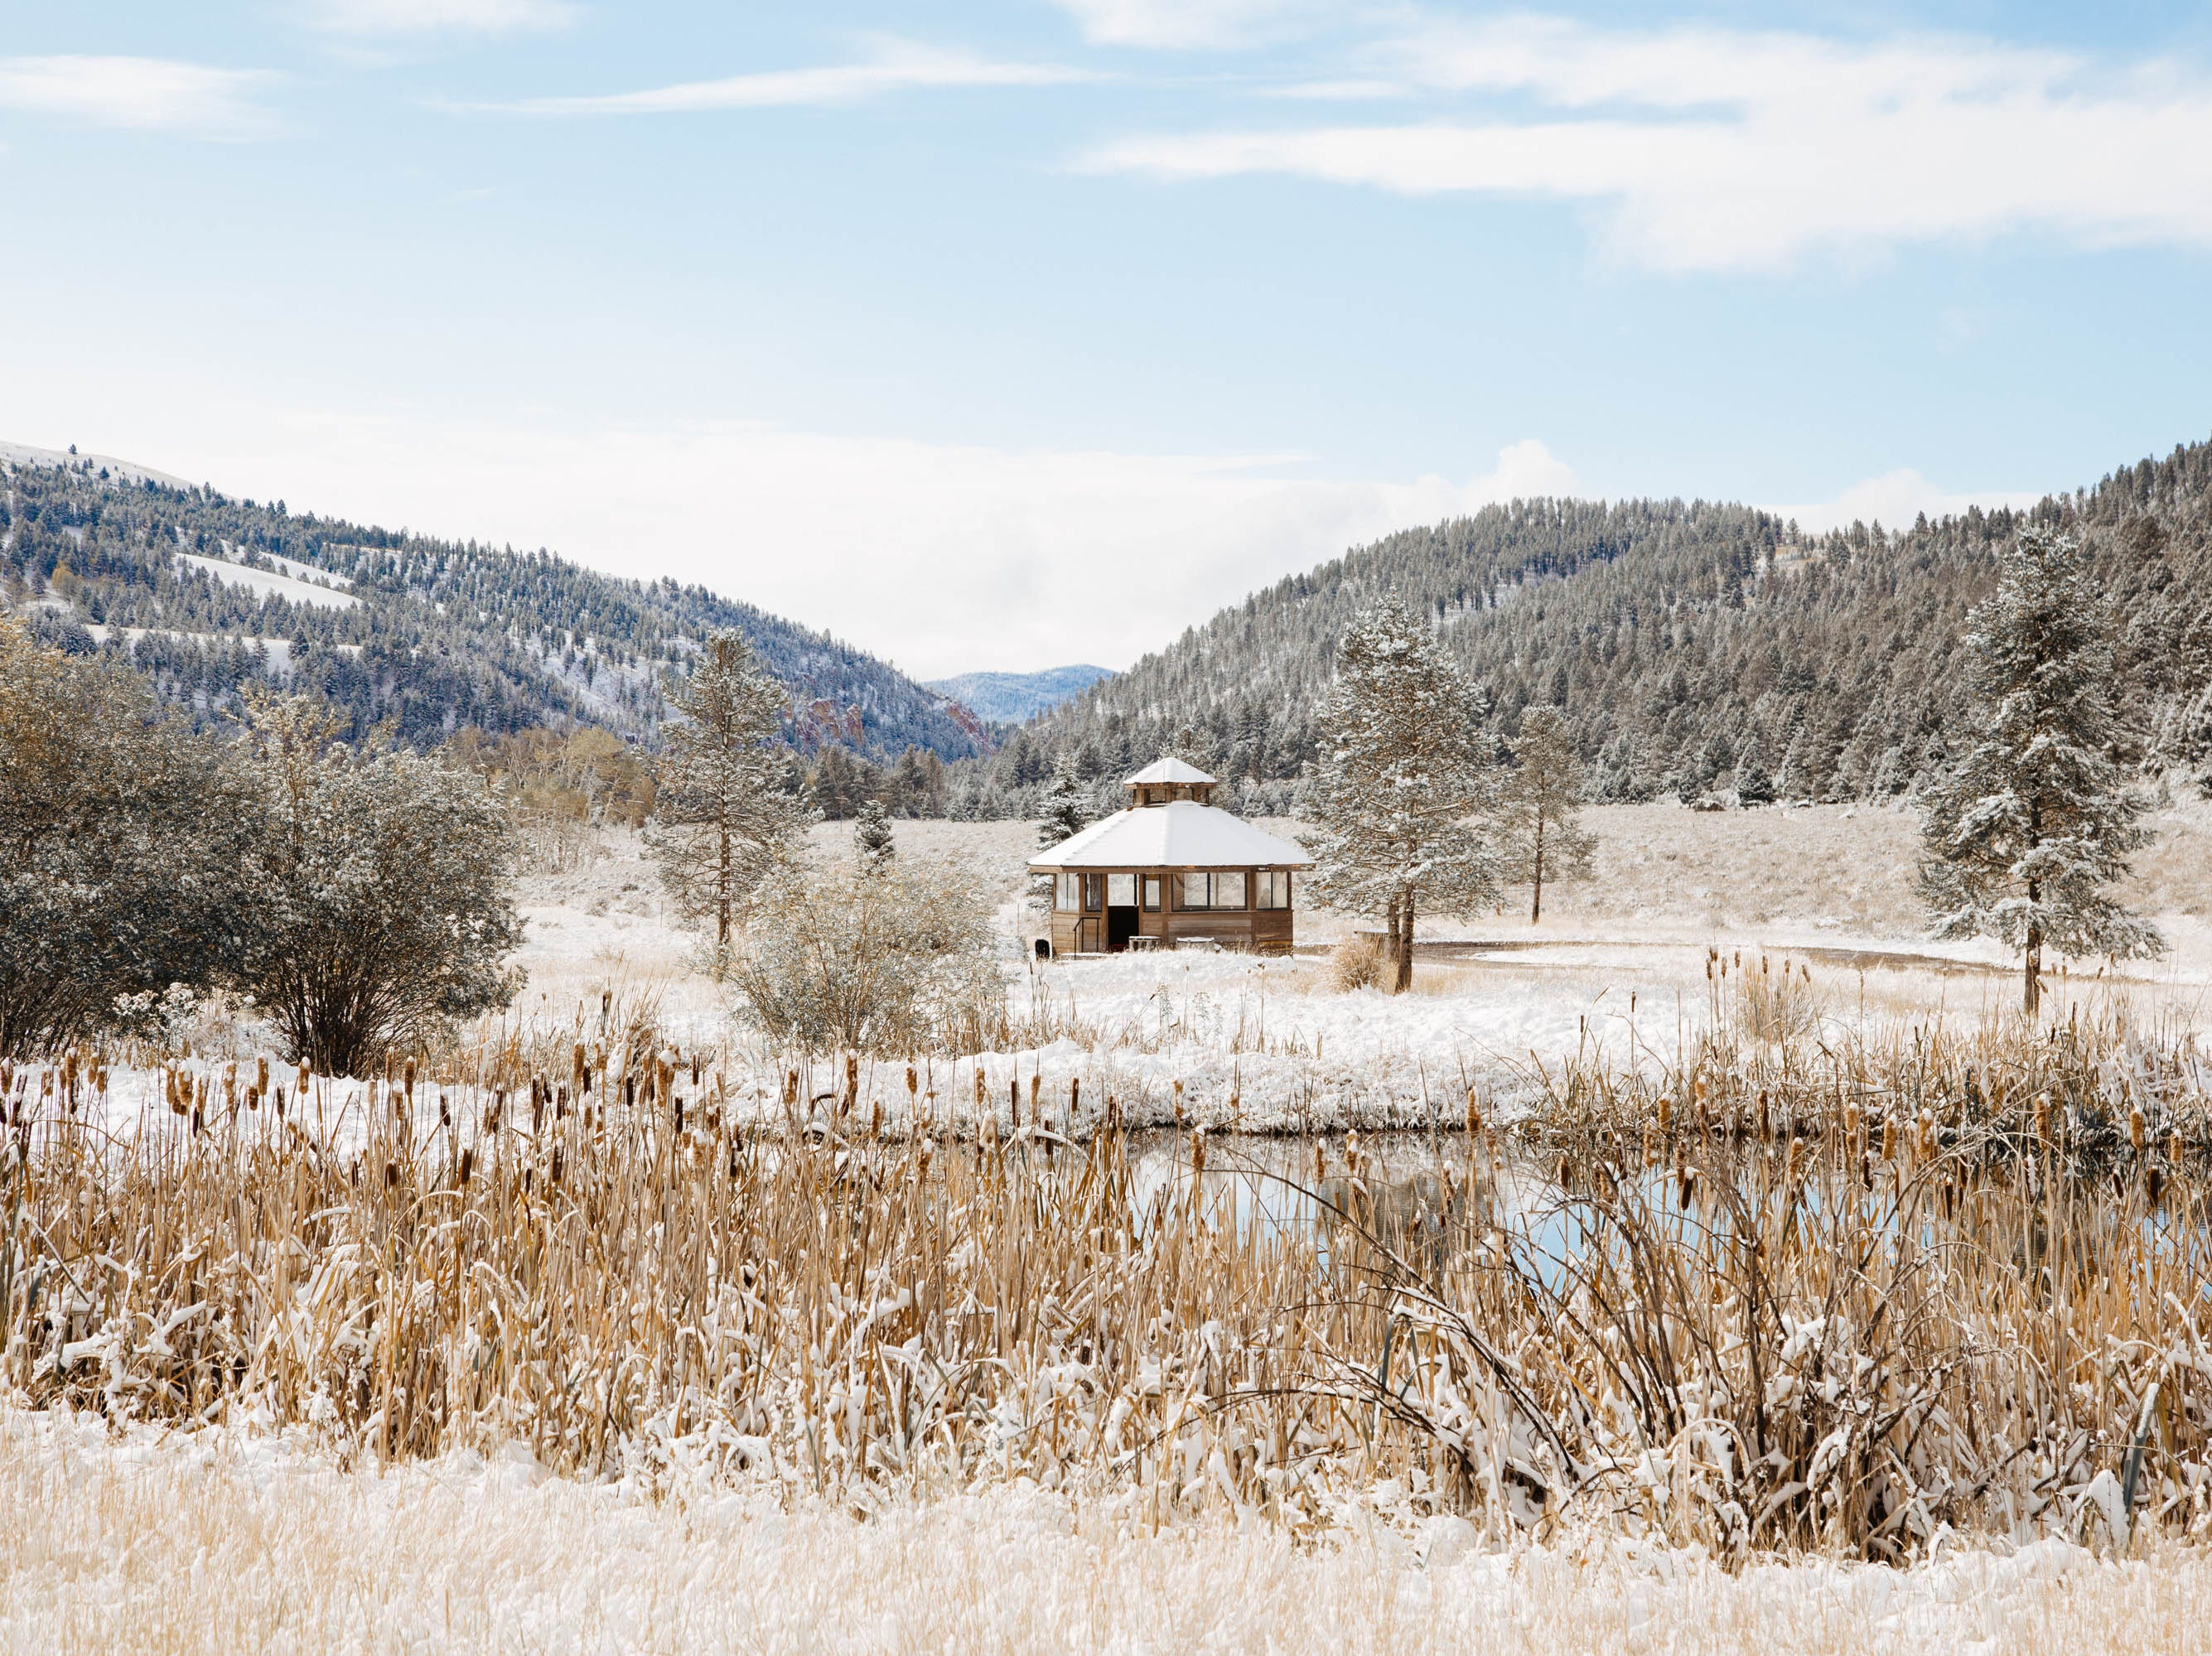 Winter is the bargain season, relatively speaking, at the Ranch at Rock Creek near Philipsburg